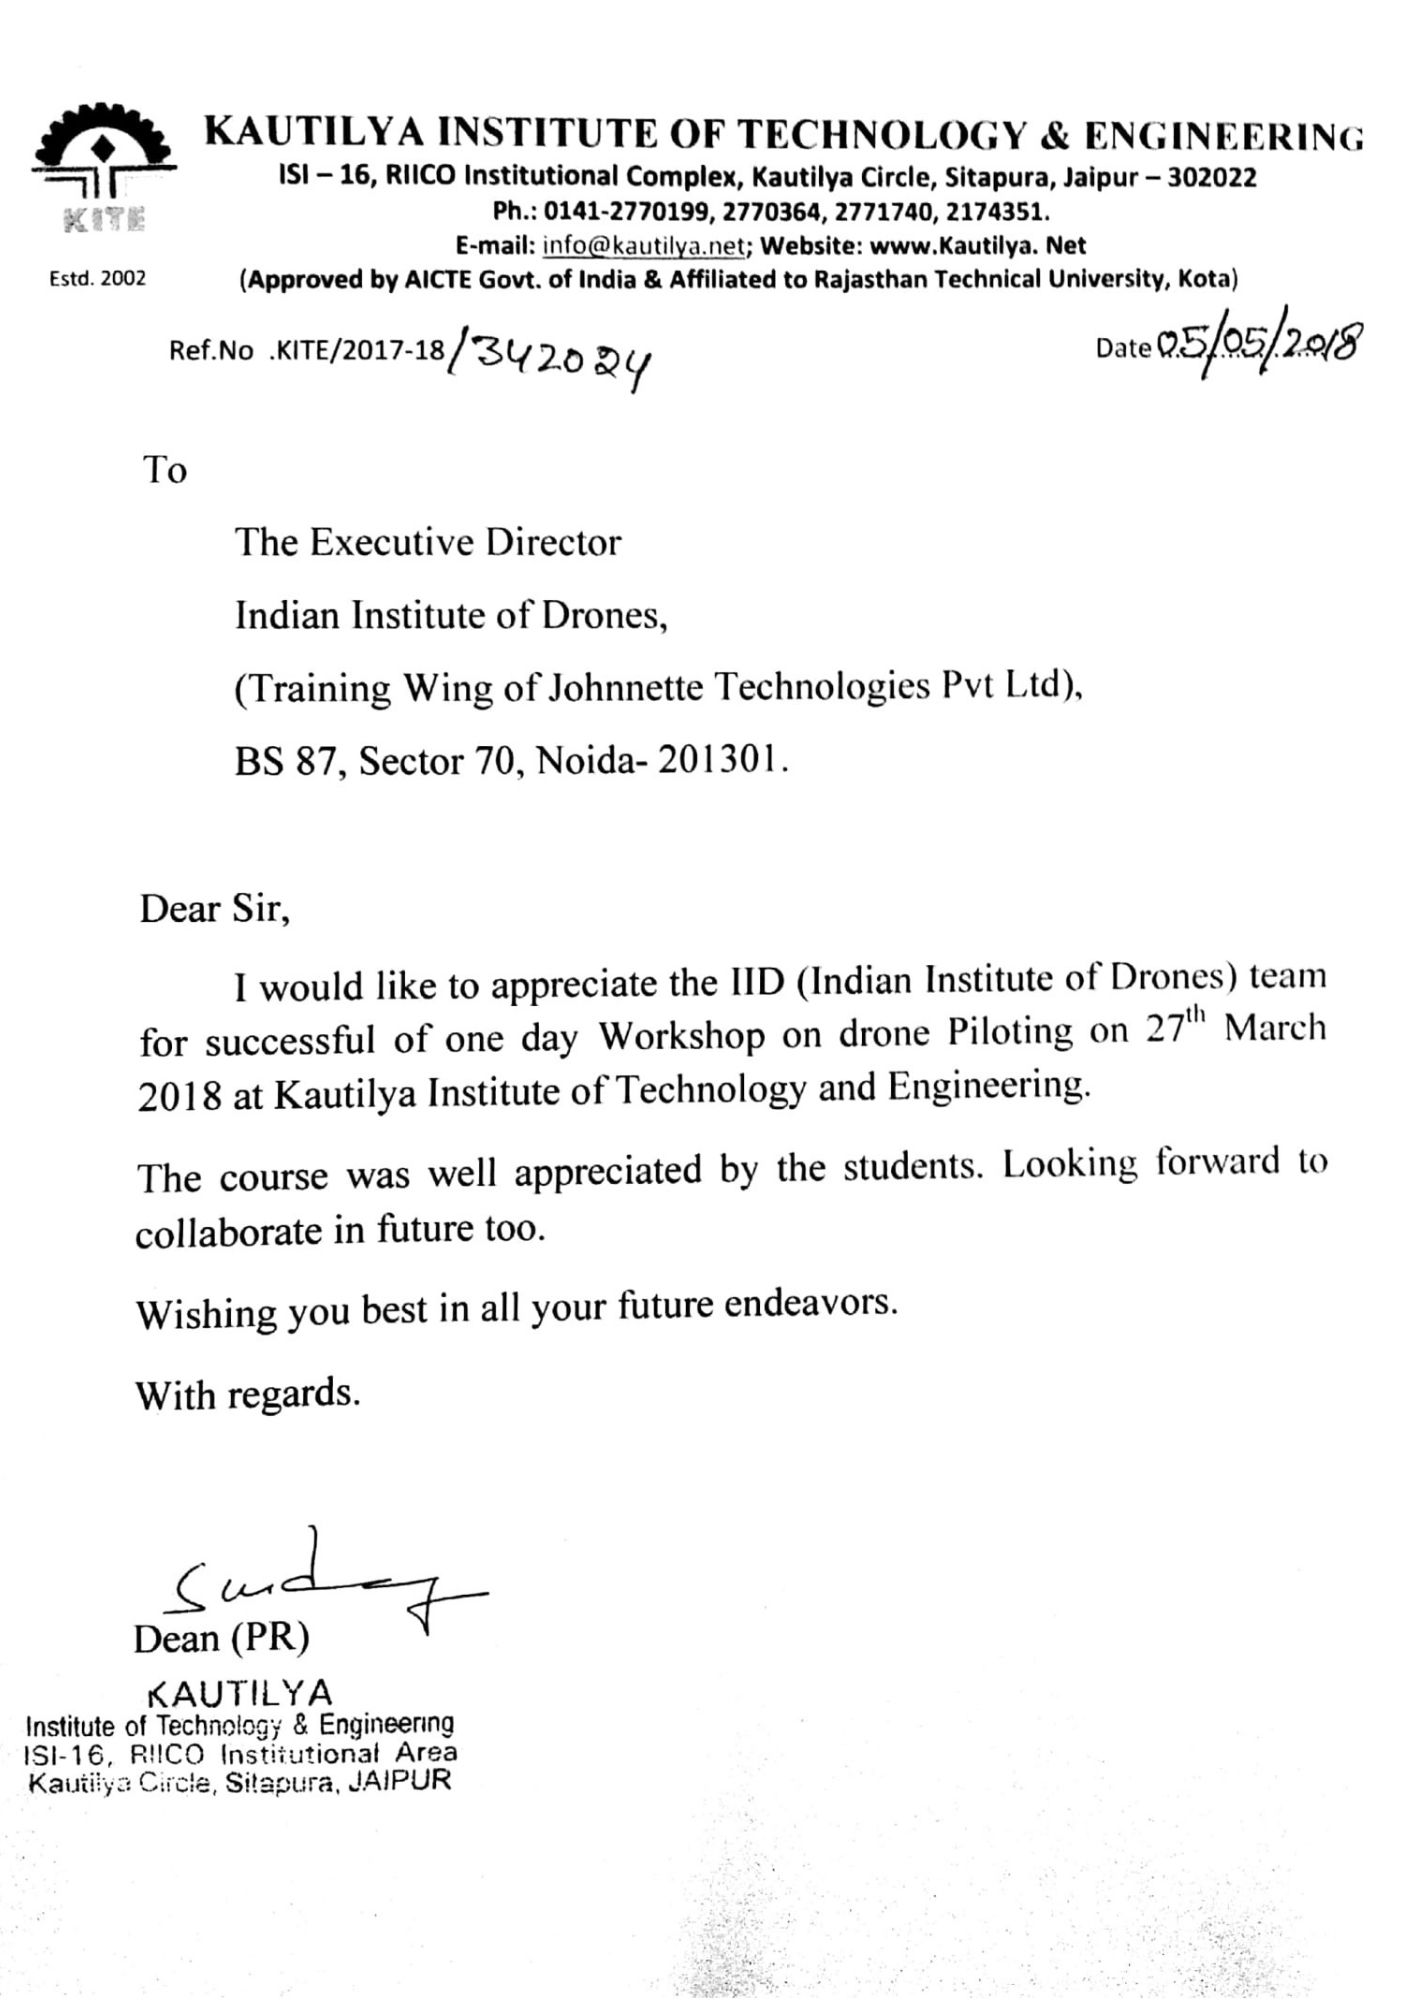 Satisfactory Letter for Drone Training Received from Kautilya Institute of Technology and Engineering